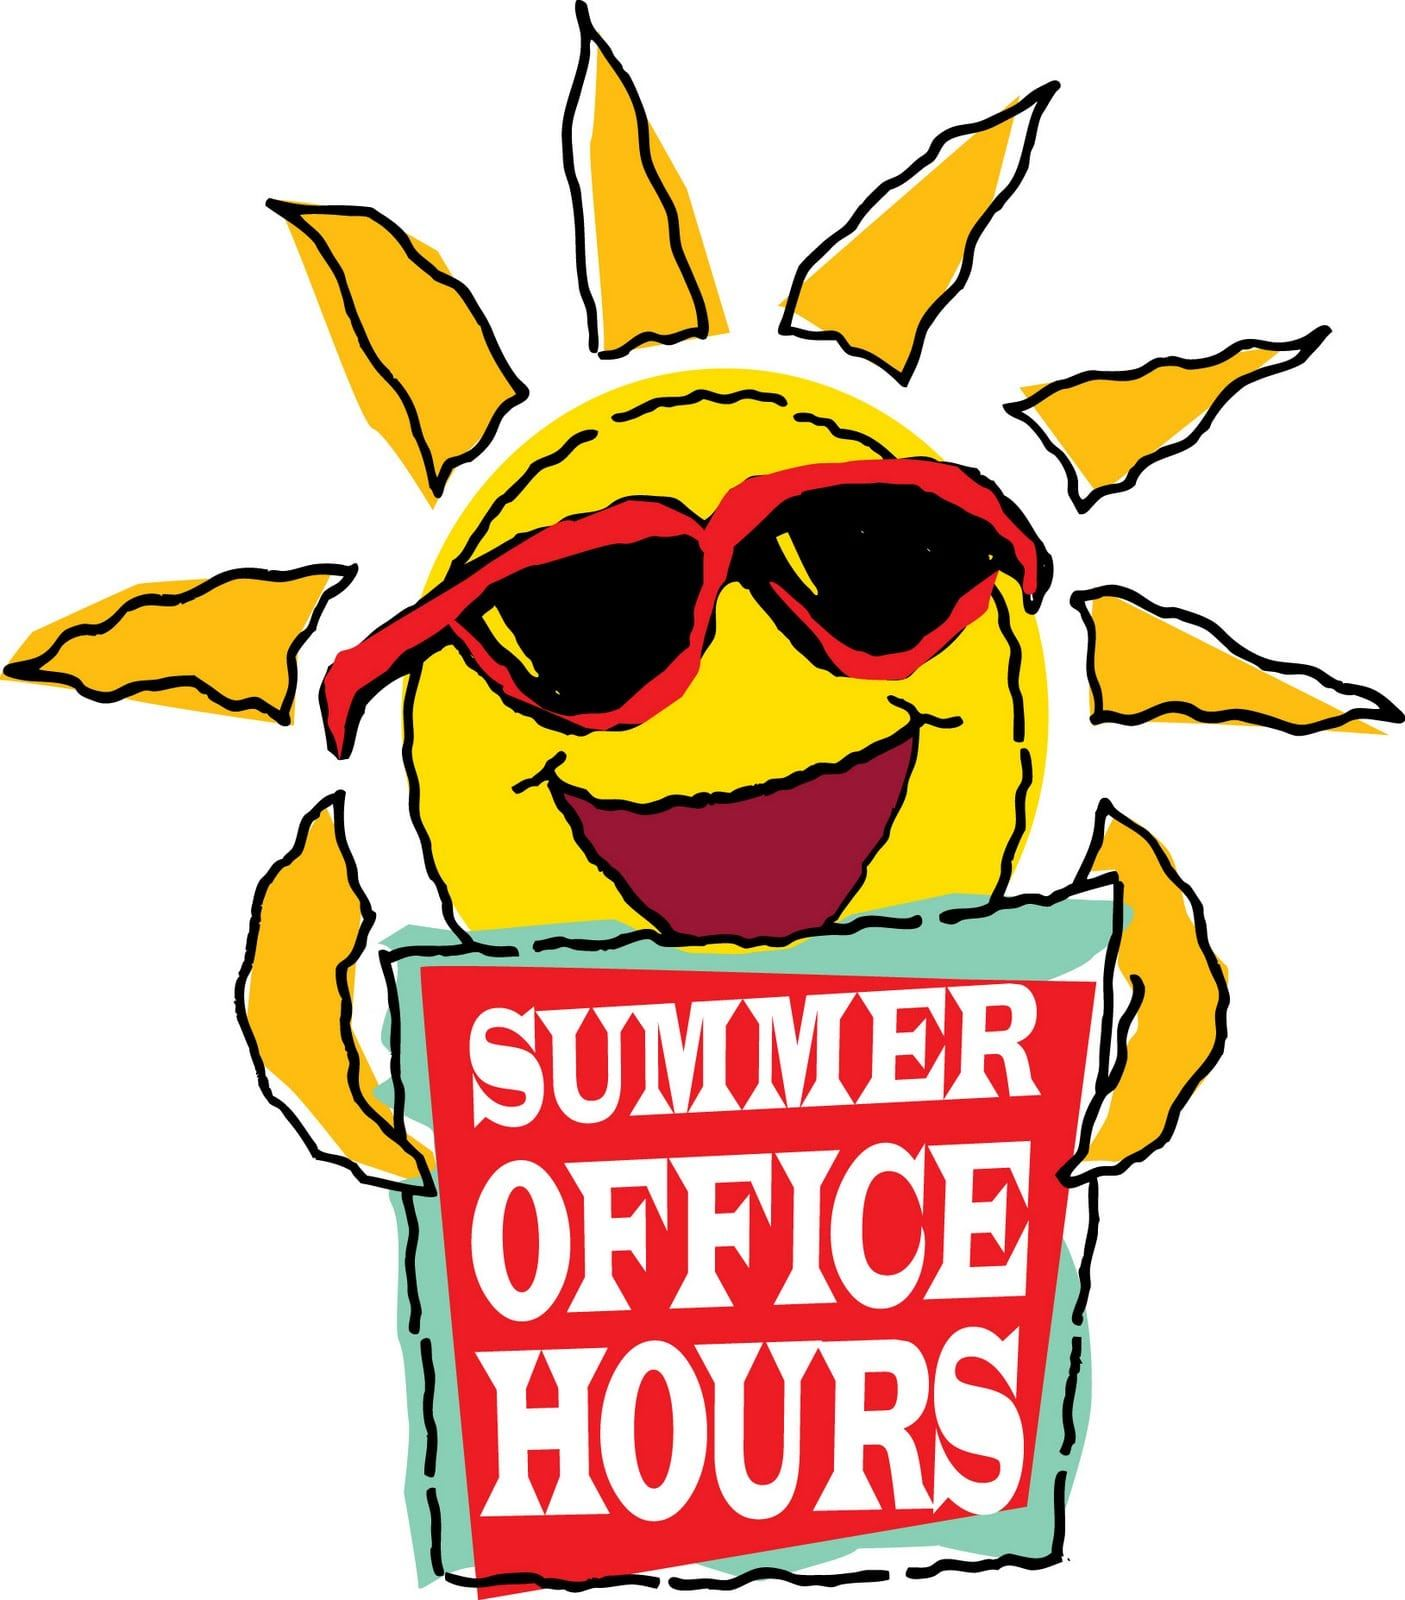 KES Summer Office Hours